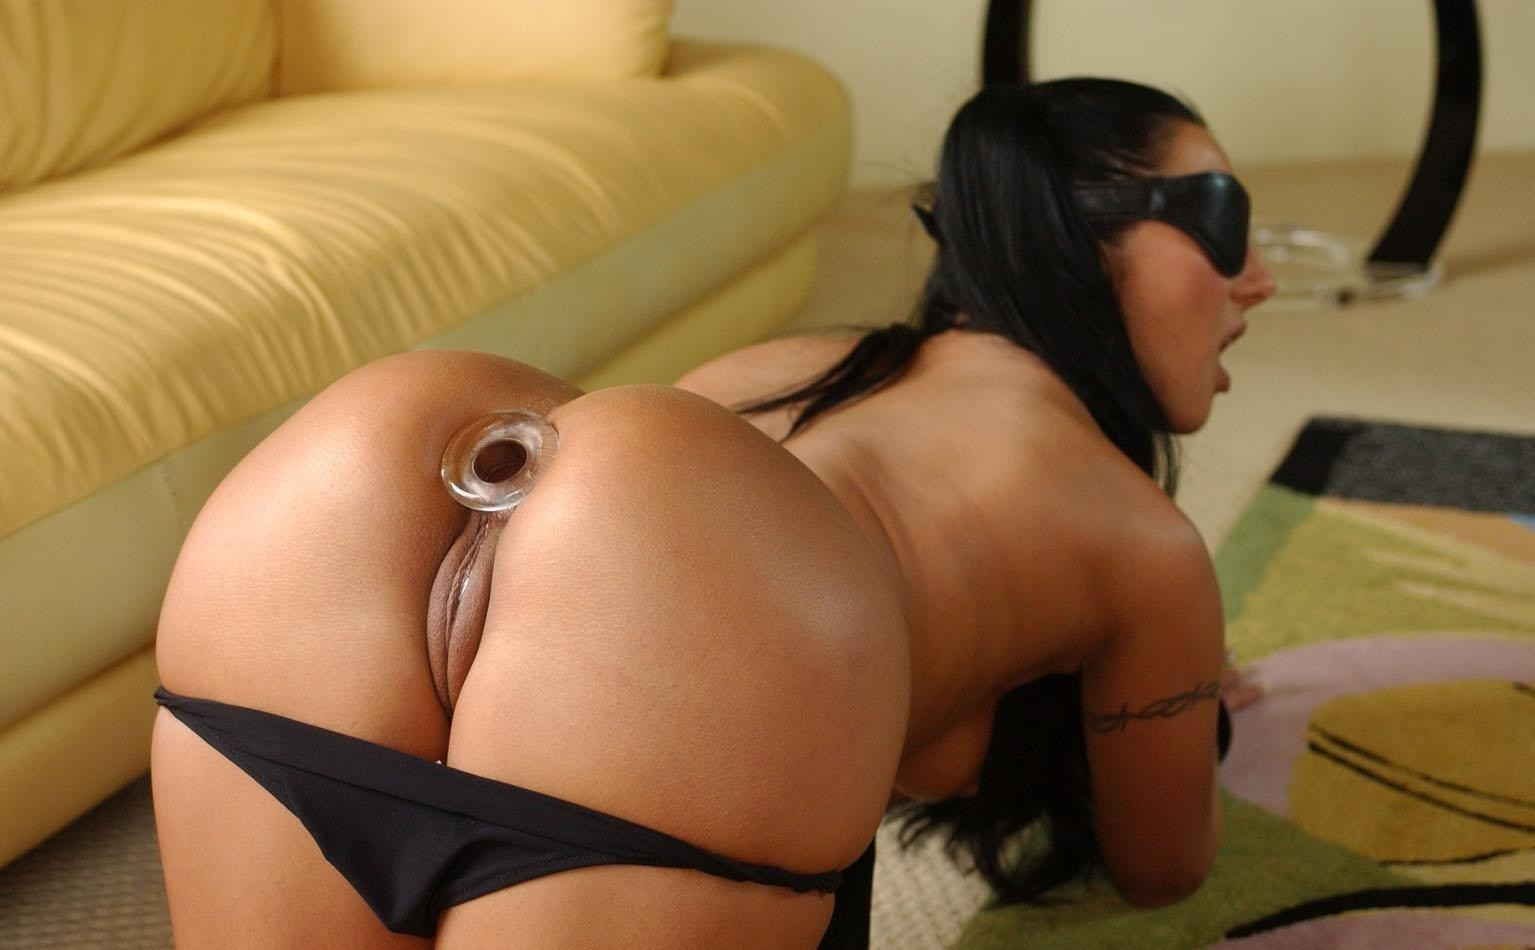 xxx inch sex movies free inch adult video clips